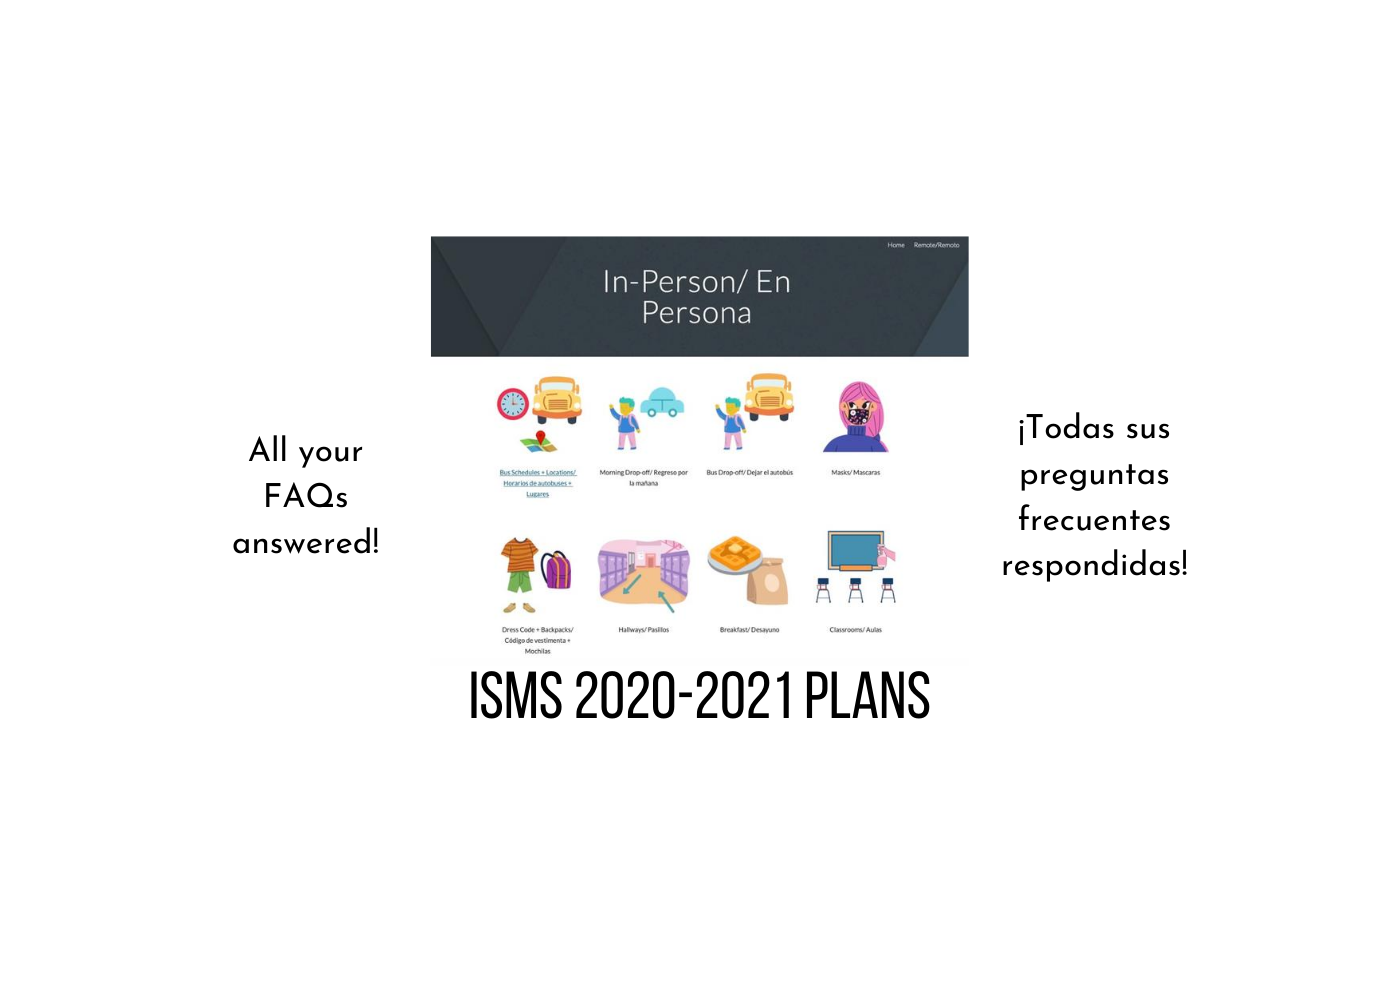 Read the ISMS Plan for 2020-2021